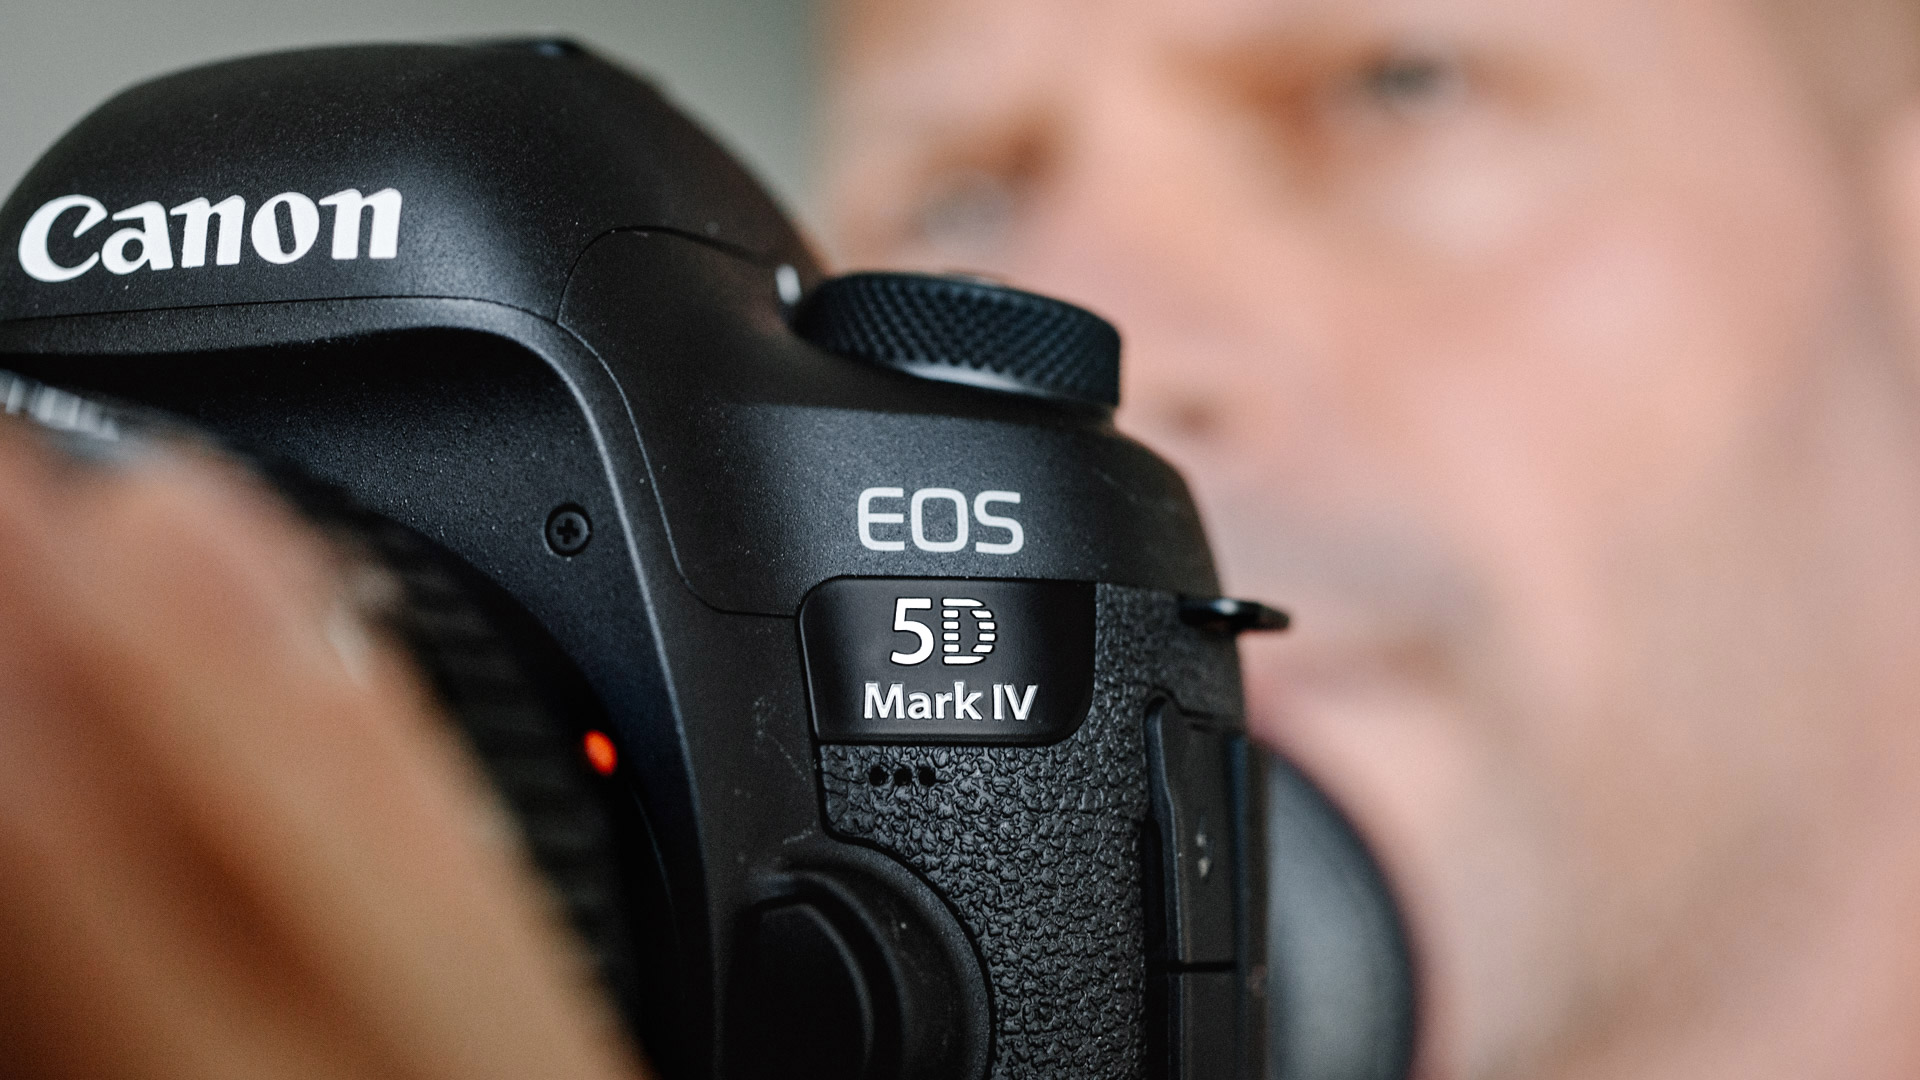 Canon 4k Dslr >> Canon 5D Mark IV Review – Real World Video Samples and First Impressions | cinema5D